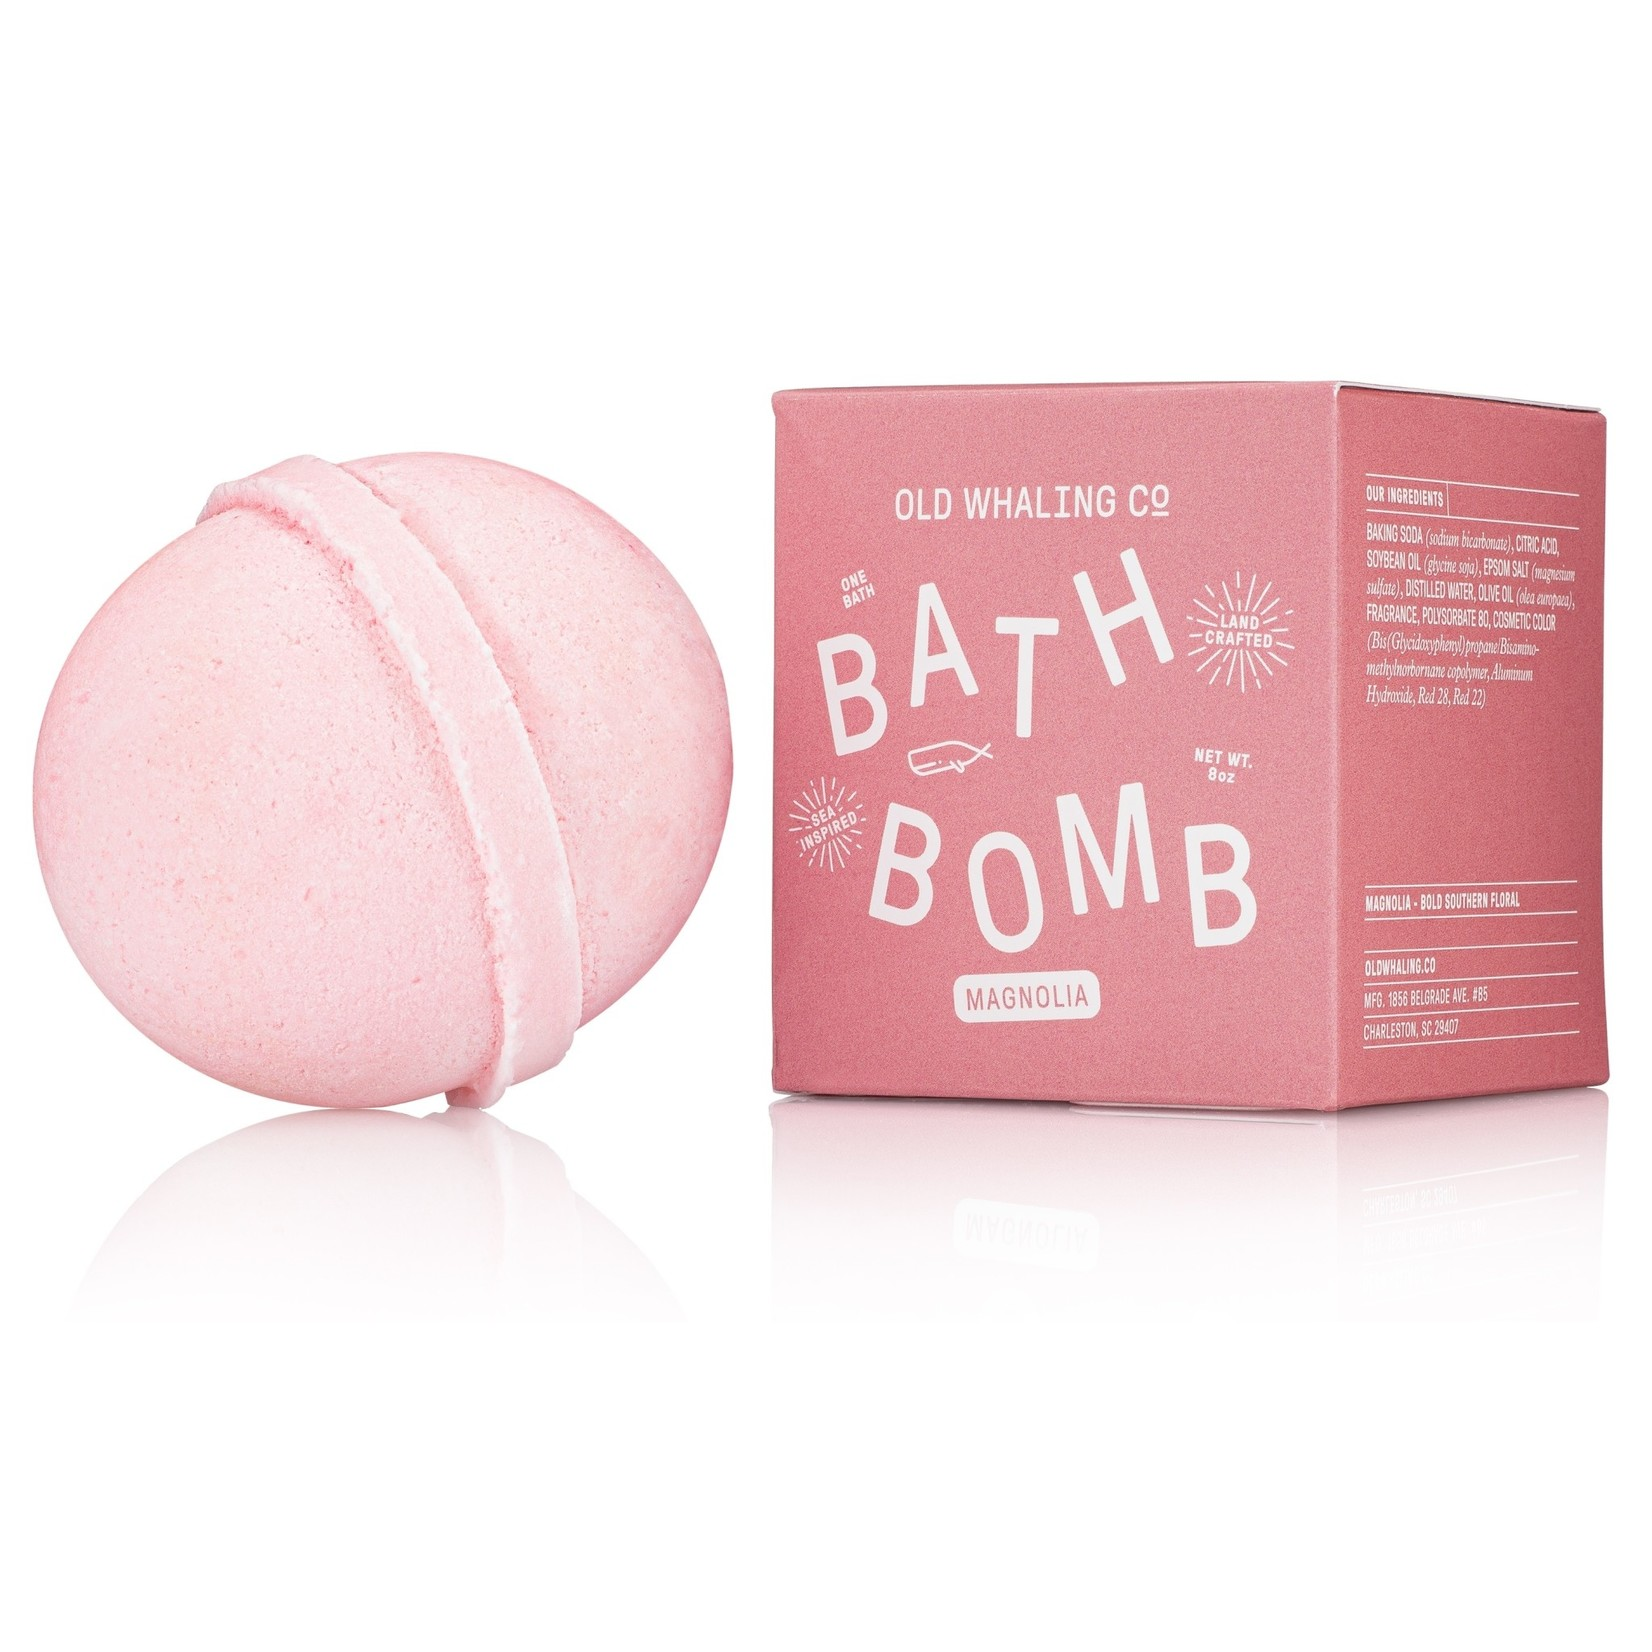 Old Whaling Company Old Whaling Company Bath Bomb Magnolia